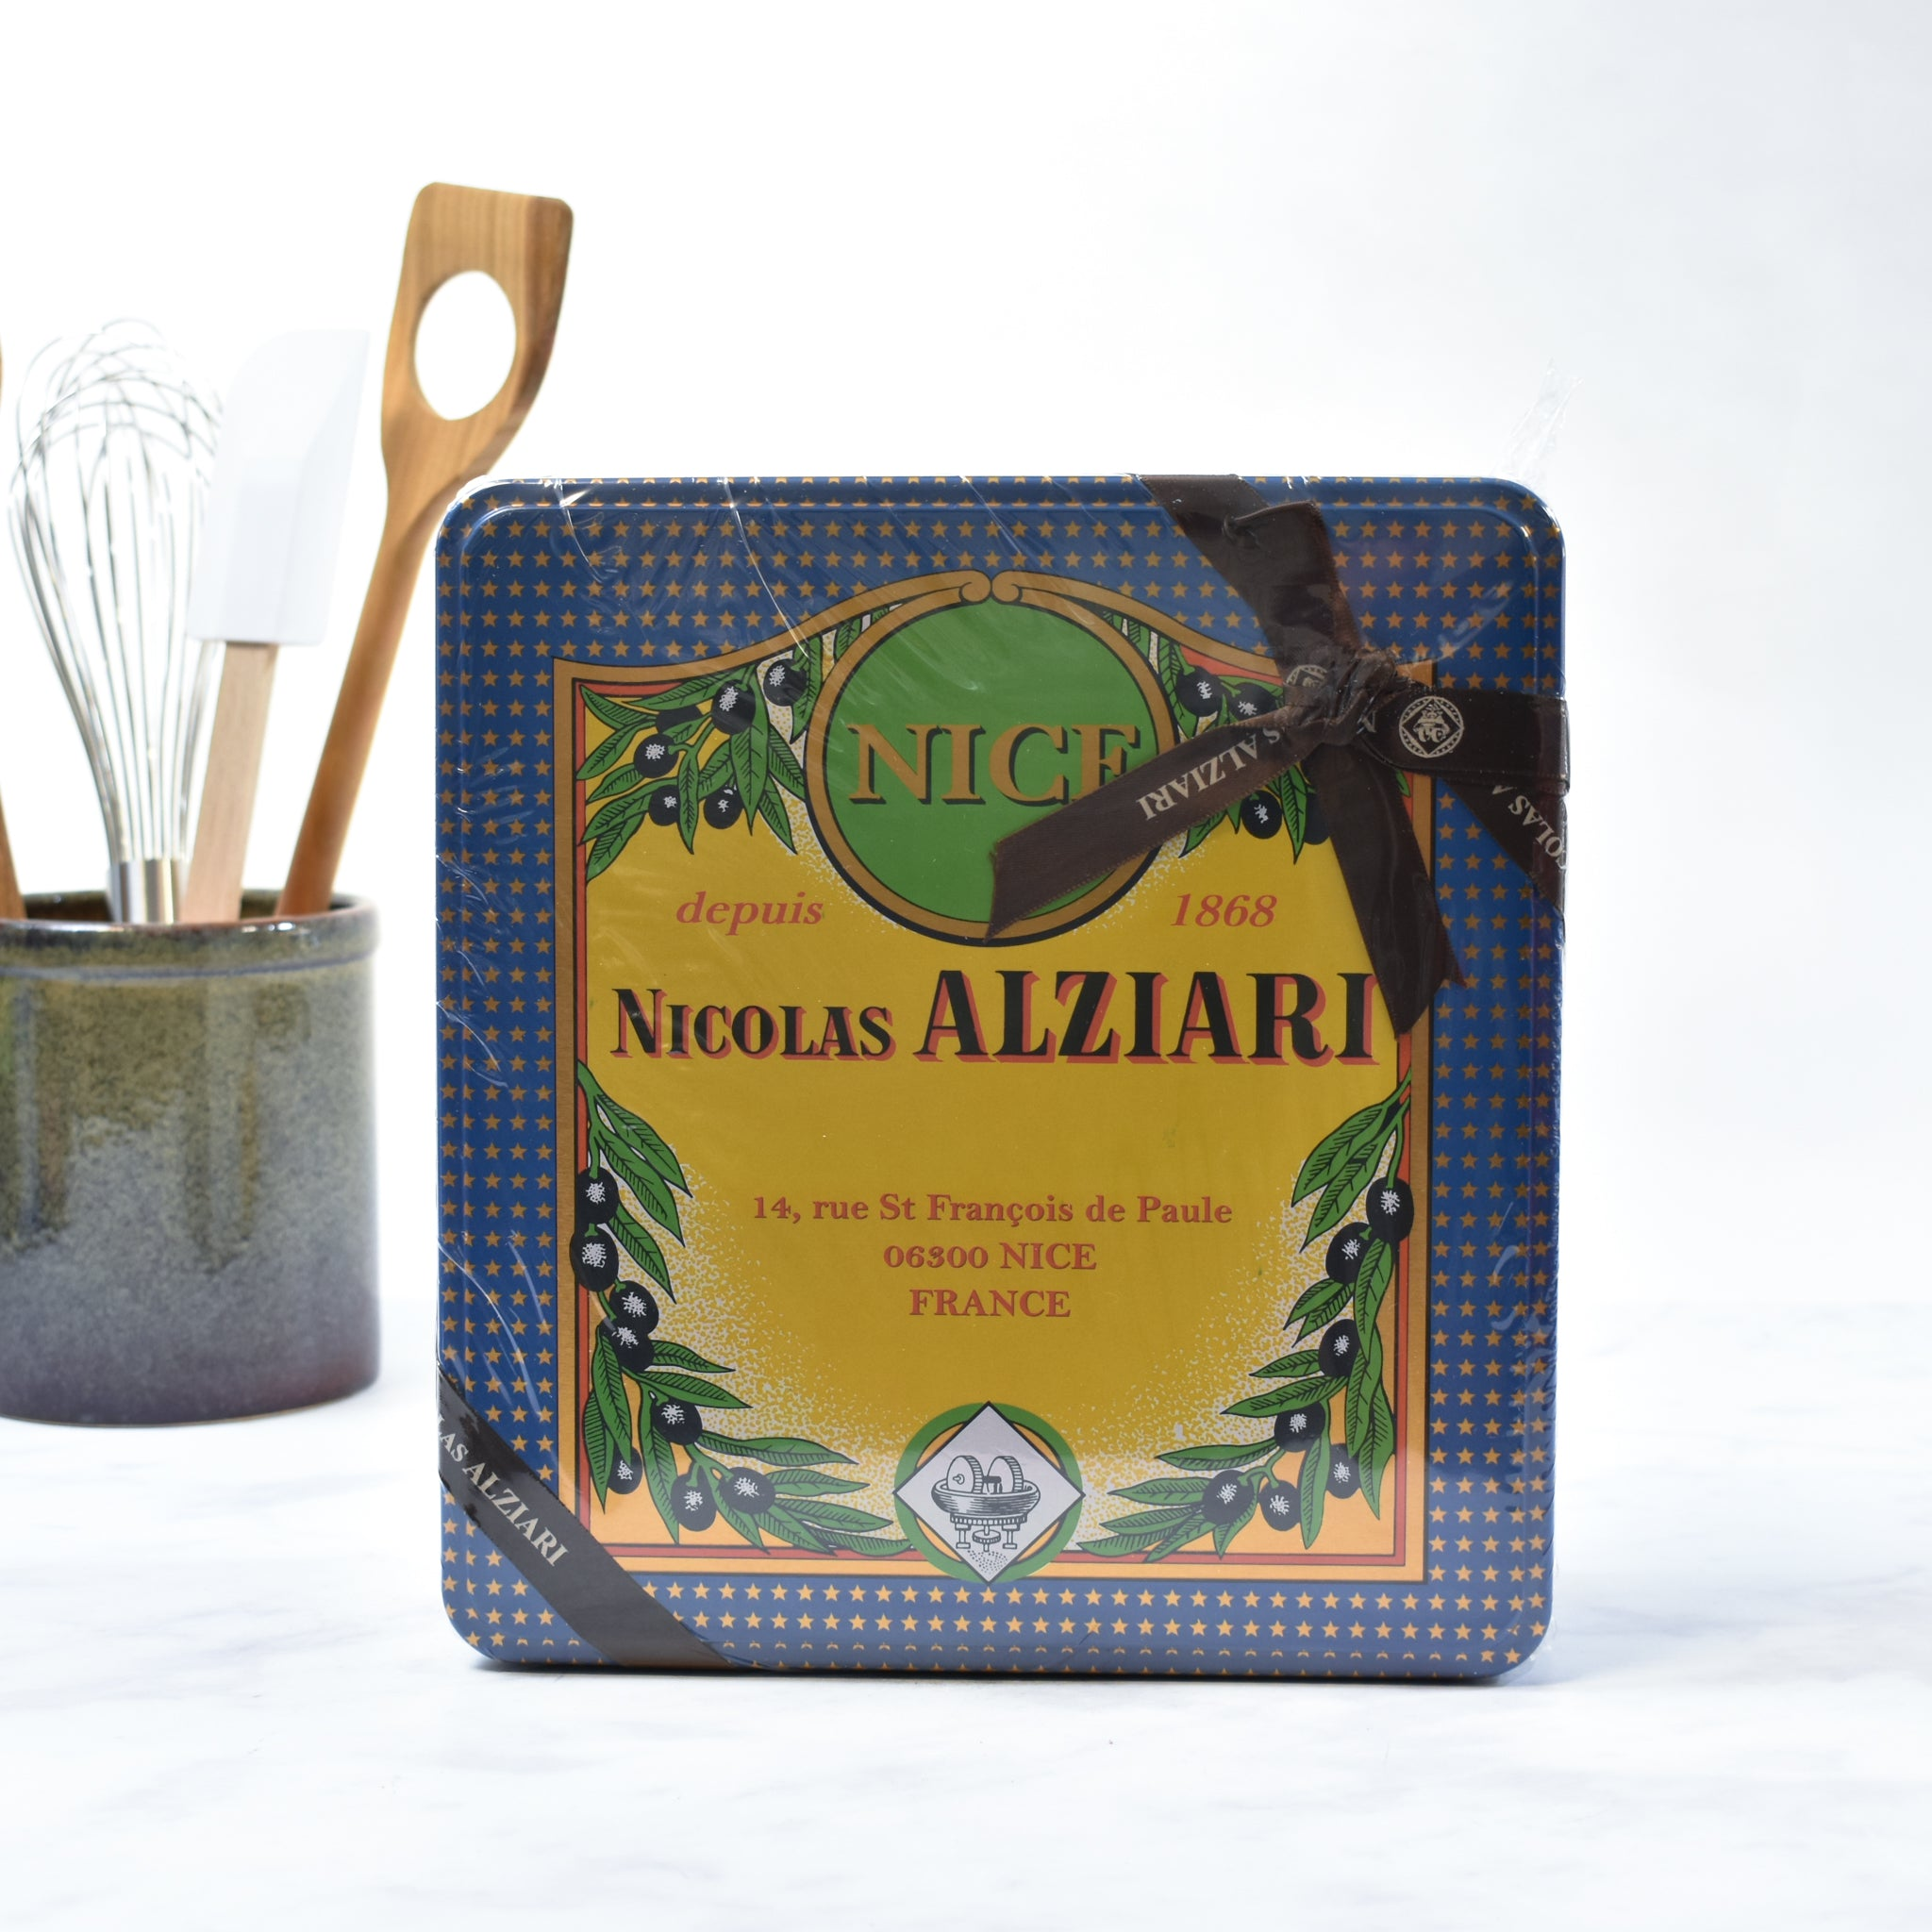 Nicolas Alziari Alziari Provence Olive Oil Gift Box Ingredients Oils & Vinegars French Food & Recipes Lifestyle Packaging Shot